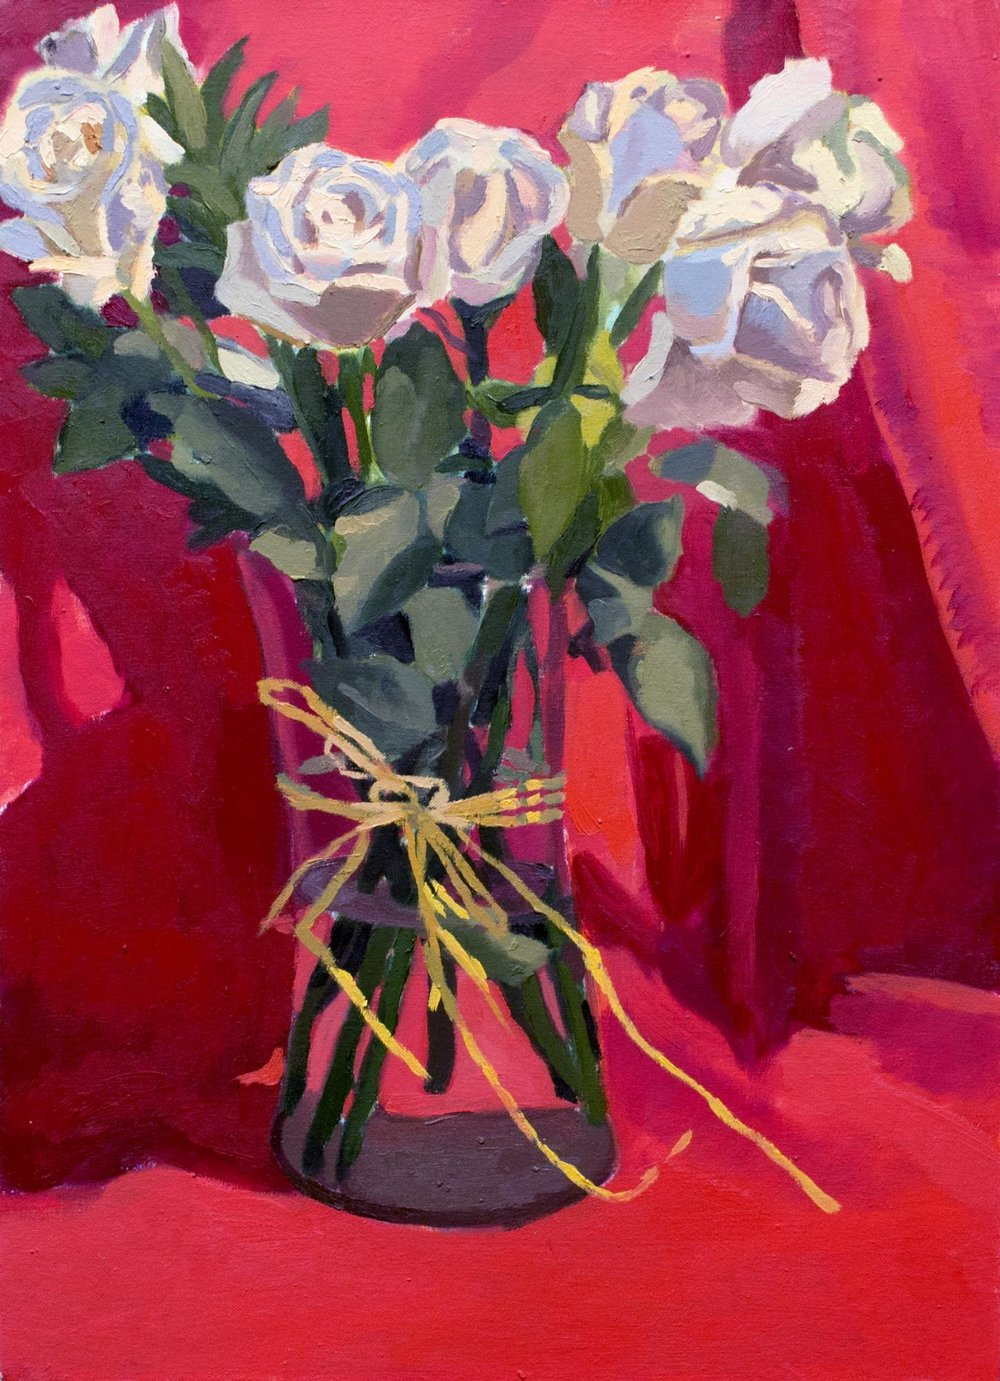 Still Life with Nine Roses   Oil on Canvas  2016